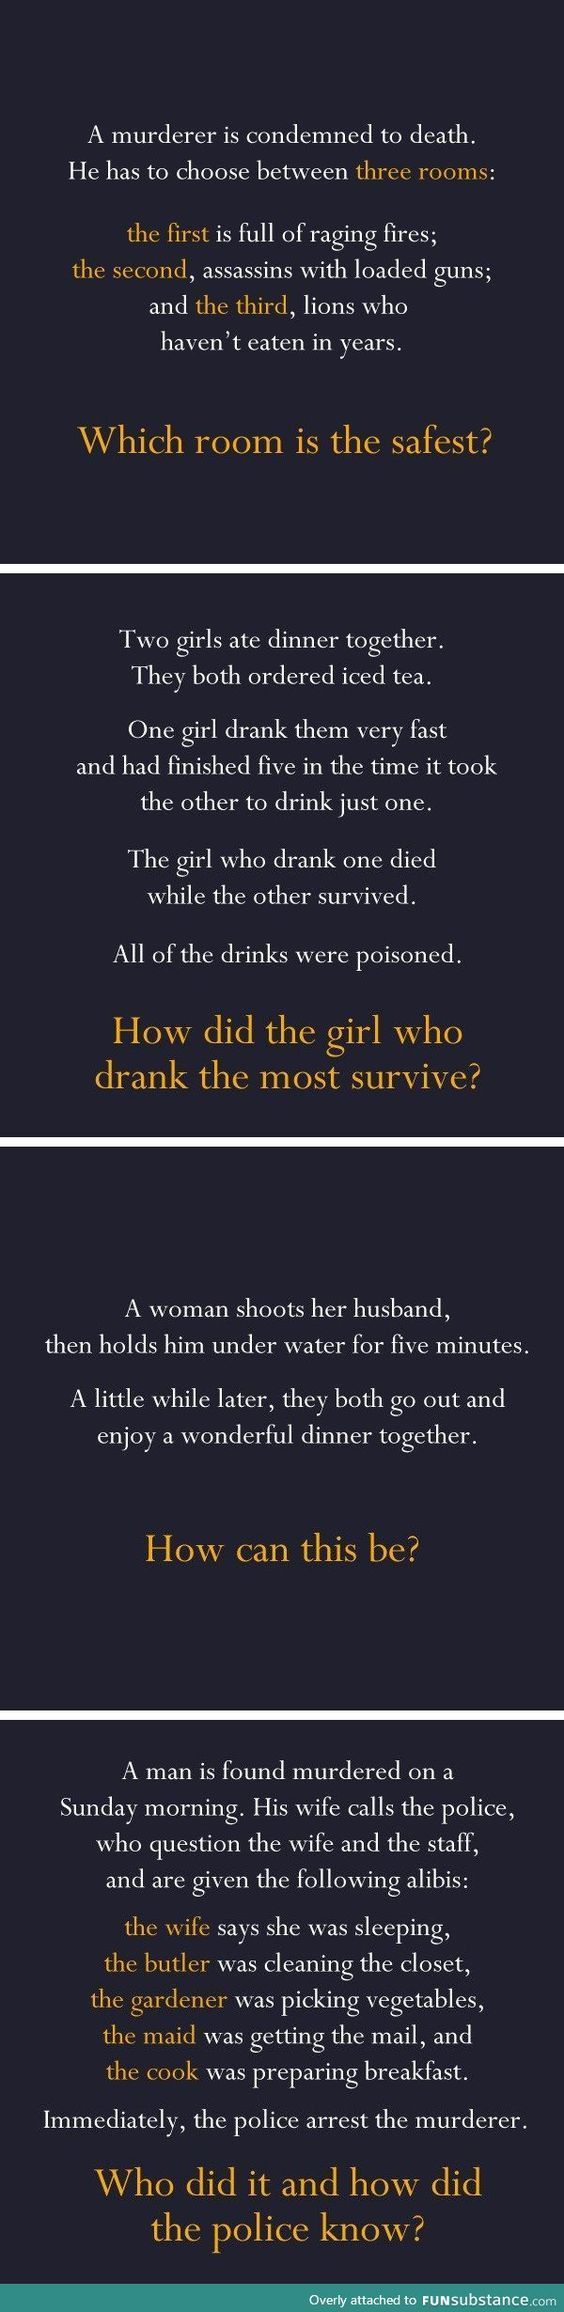 25 best Riddles images on Pinterest | Mystery riddles, Mind ...